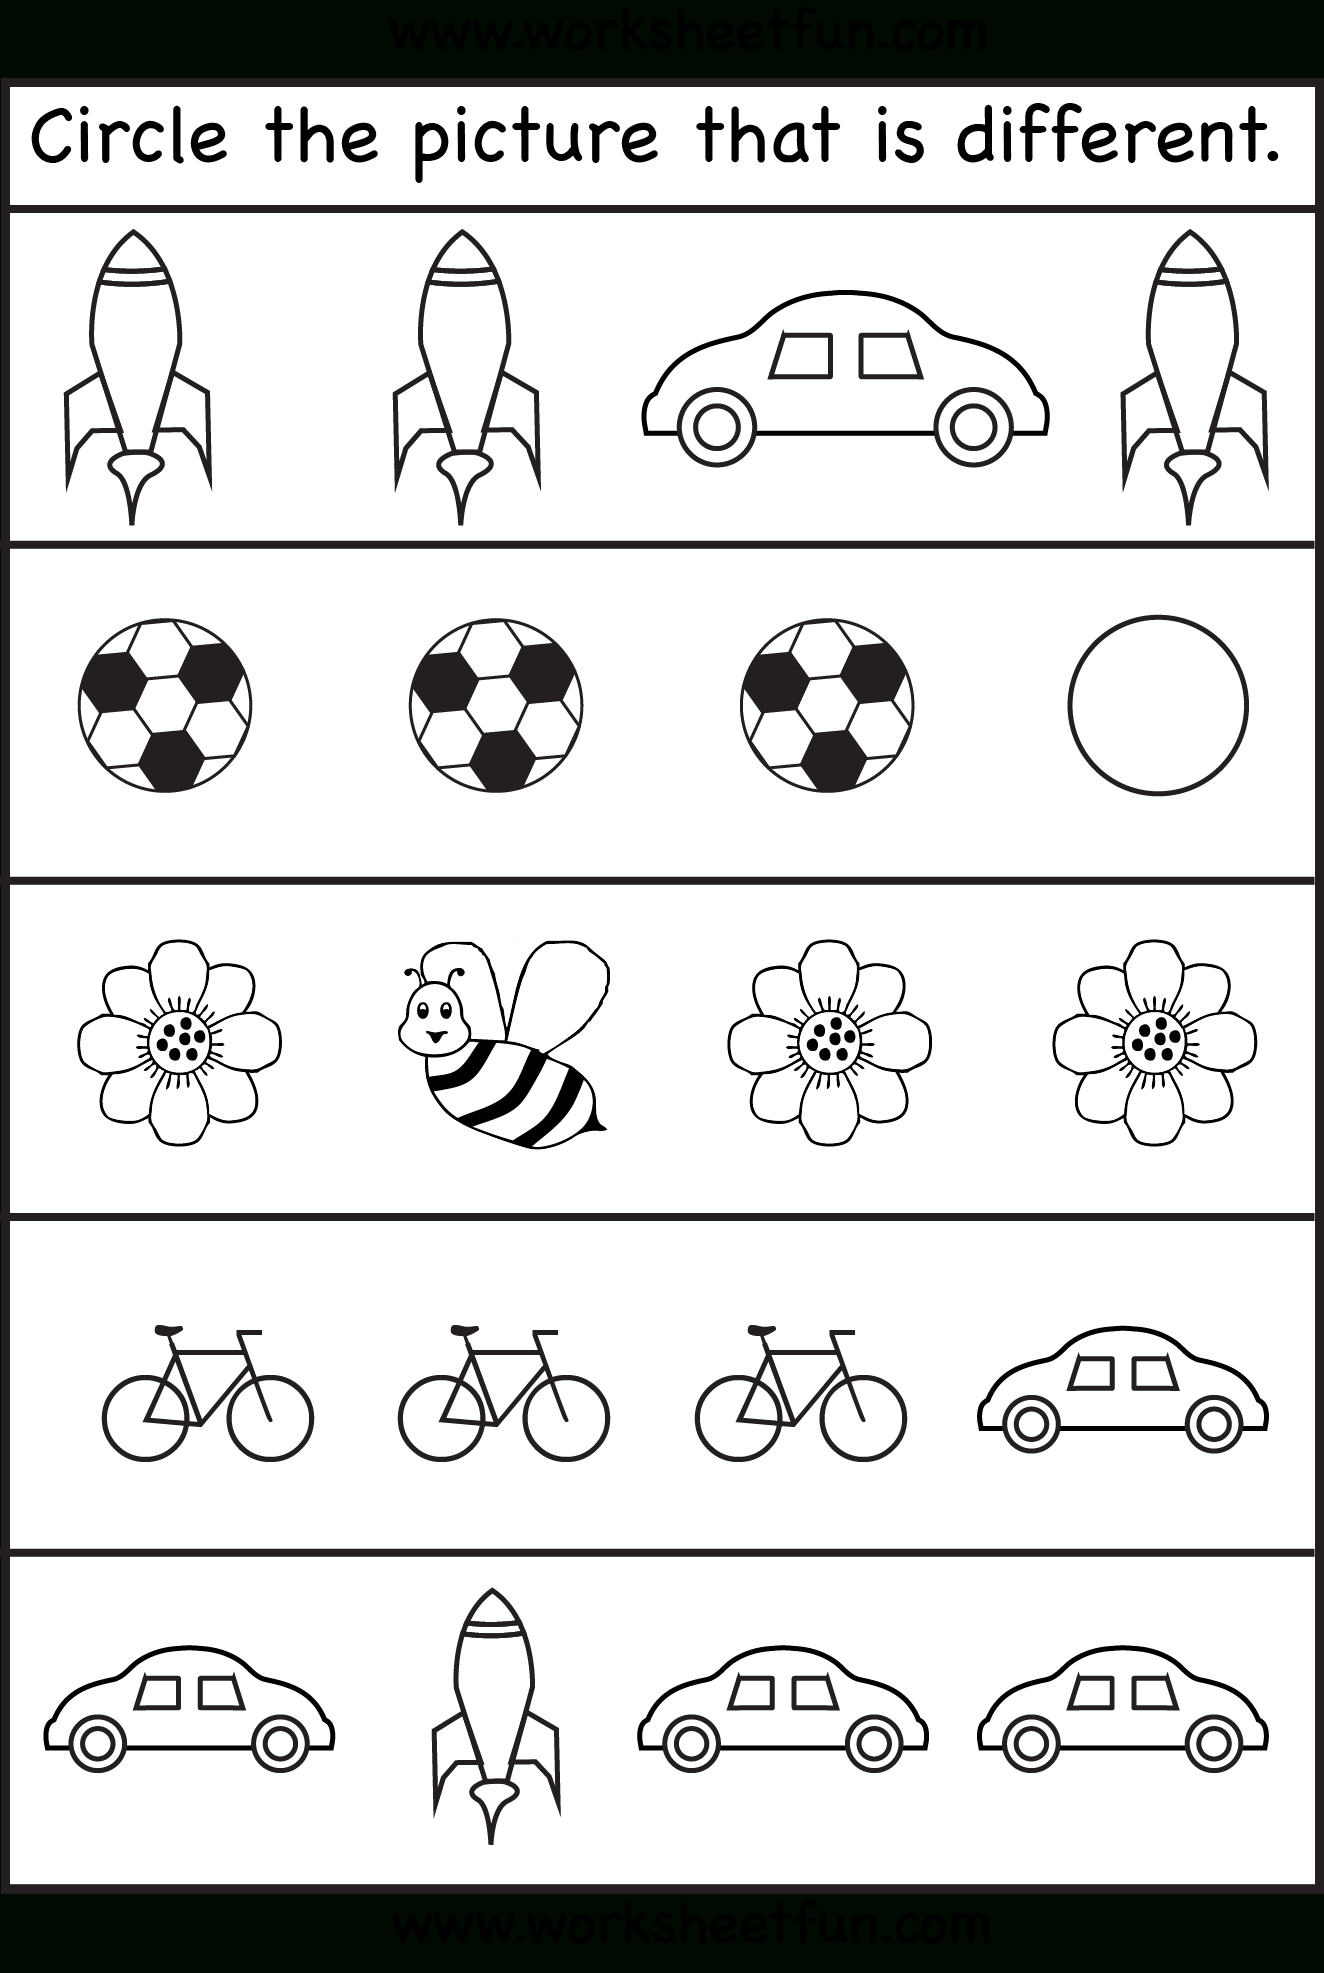 Same Or Different Worksheets For Toddler   Toddler Art Projects - Free Printable Worksheets For 3 Year Olds